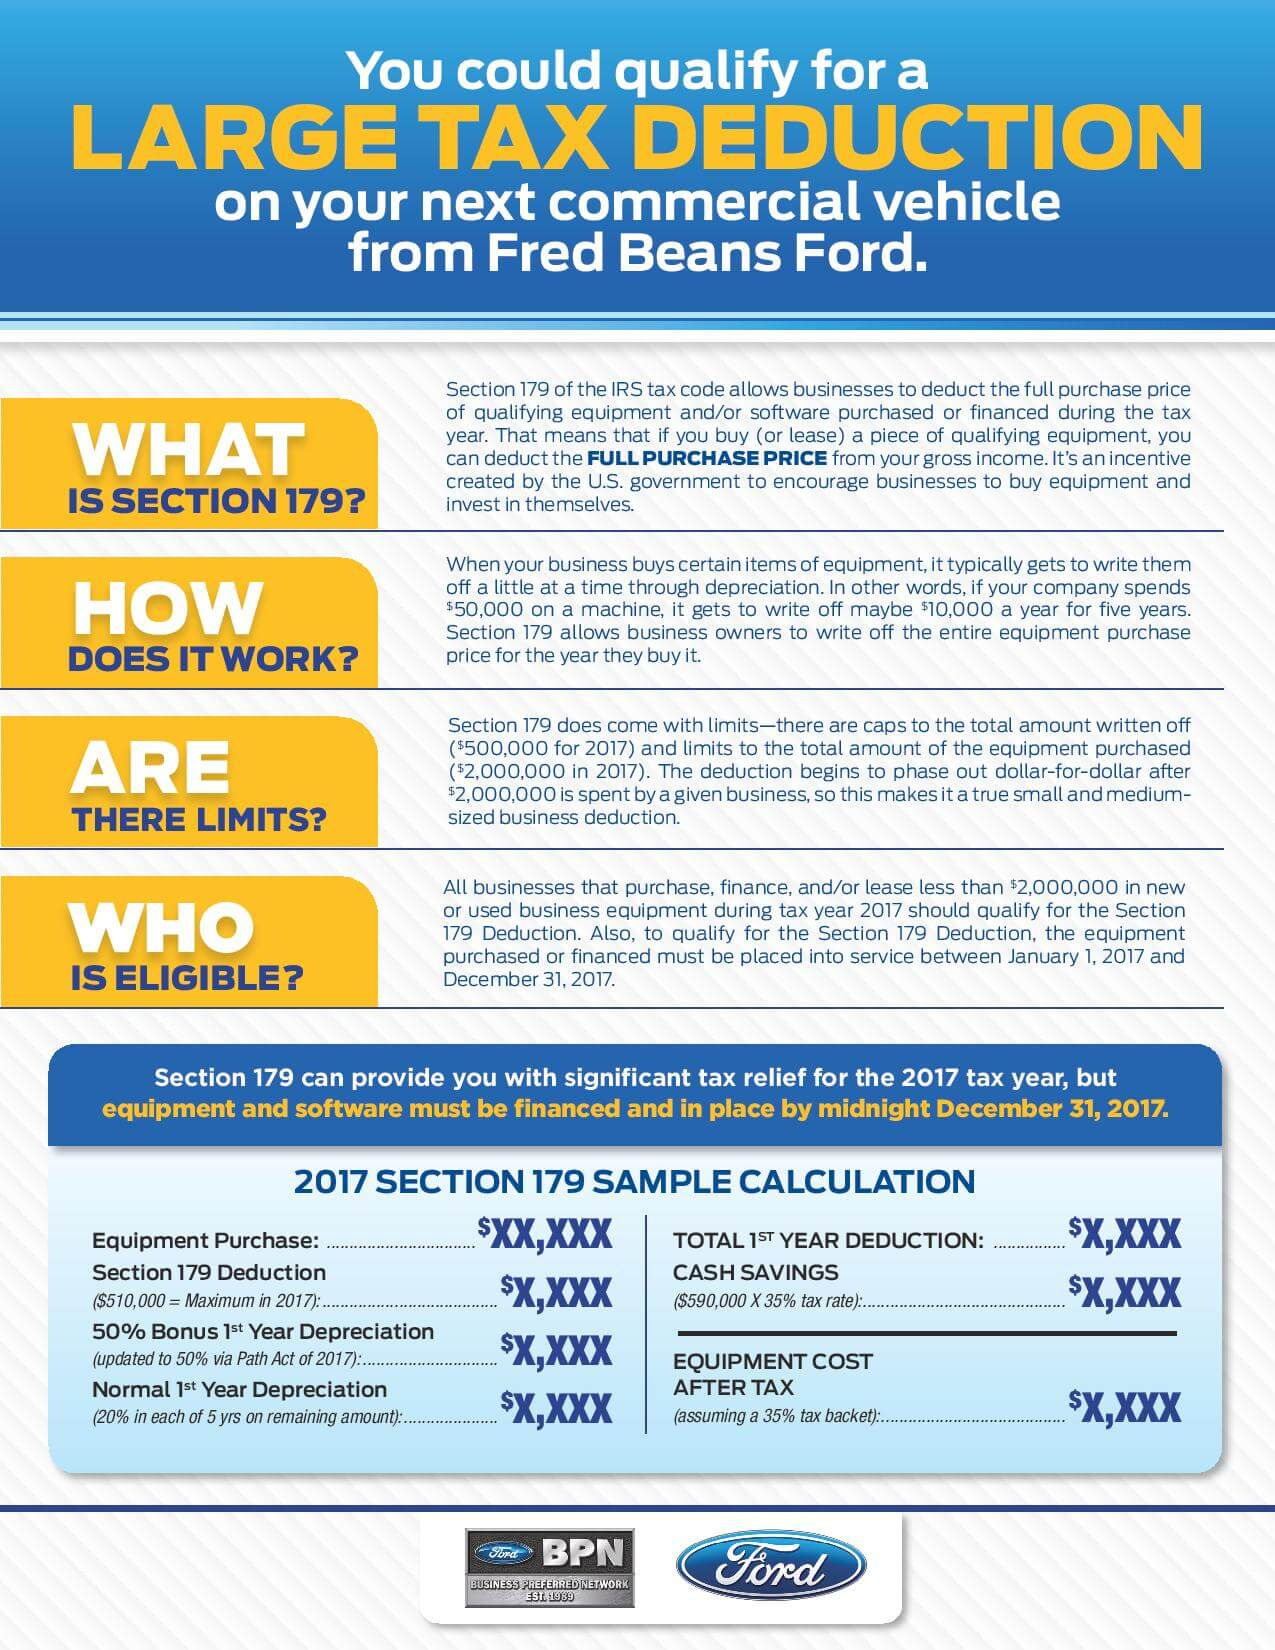 Fred Beans Ford Of West Chester New Ford Dealership In West - What is dealer invoice price for service business